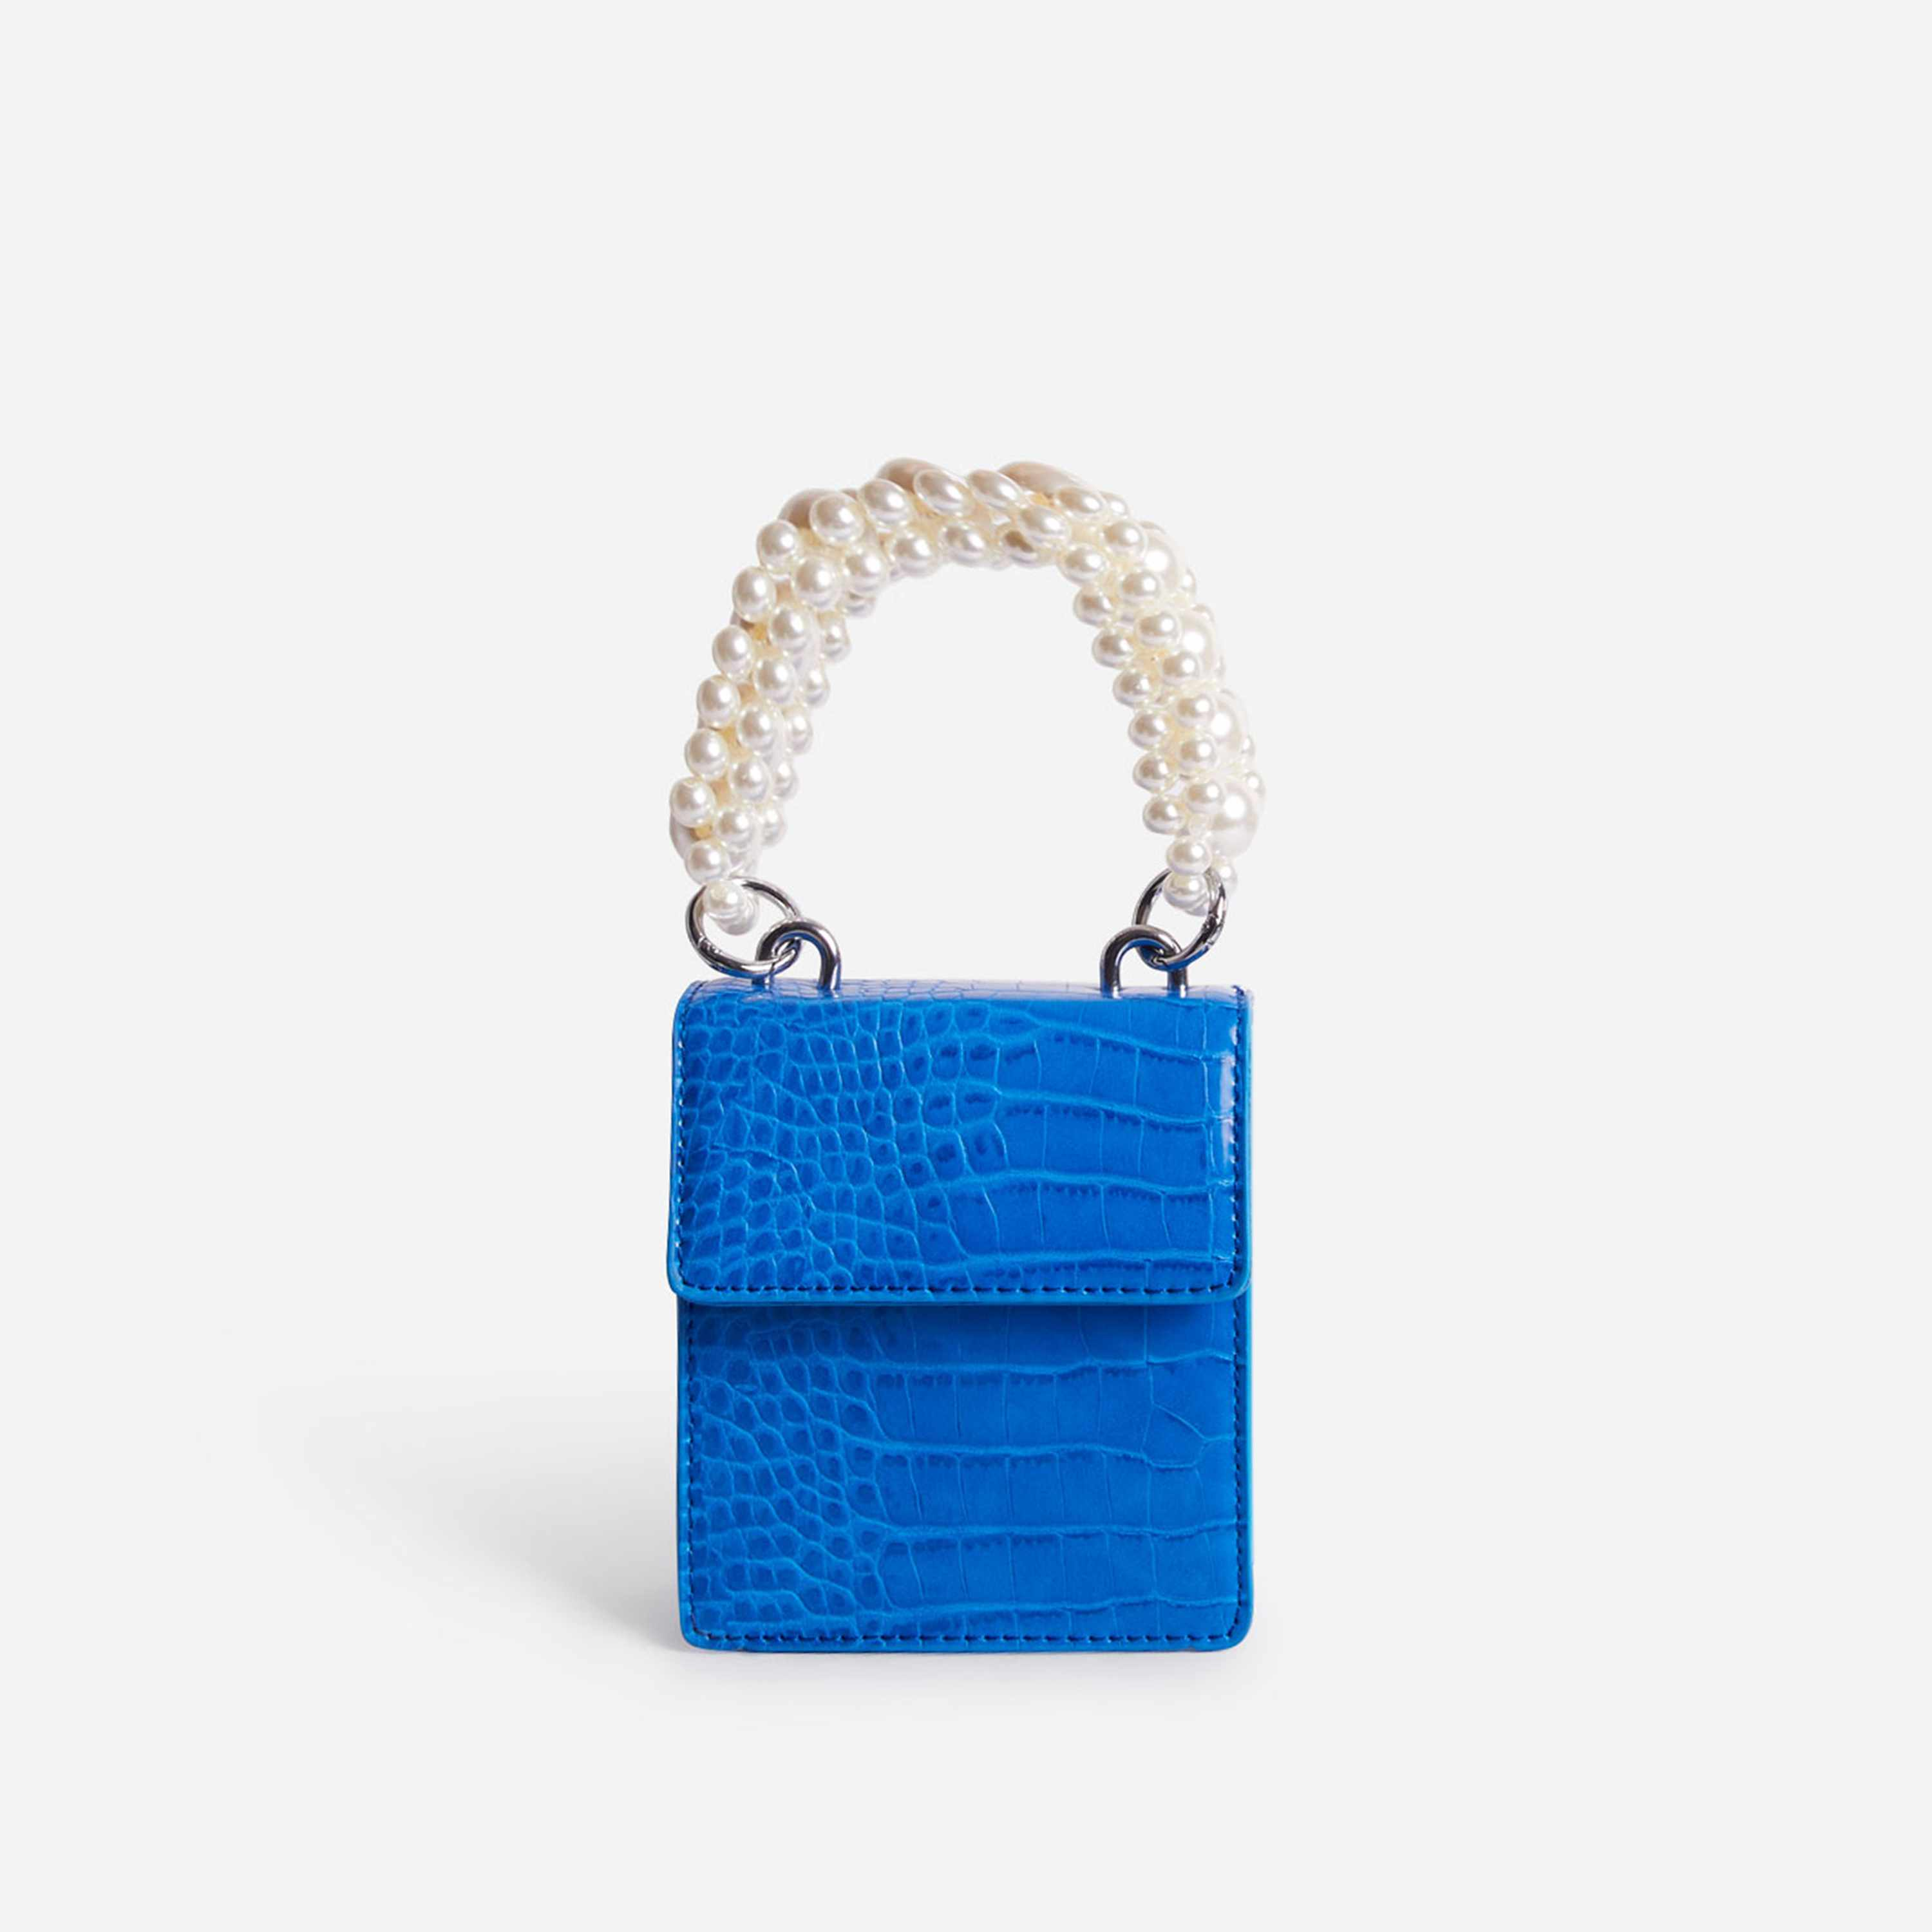 Duchess Pearl Handle Mini Grab Bag In Blue Croc Print Faux Leather